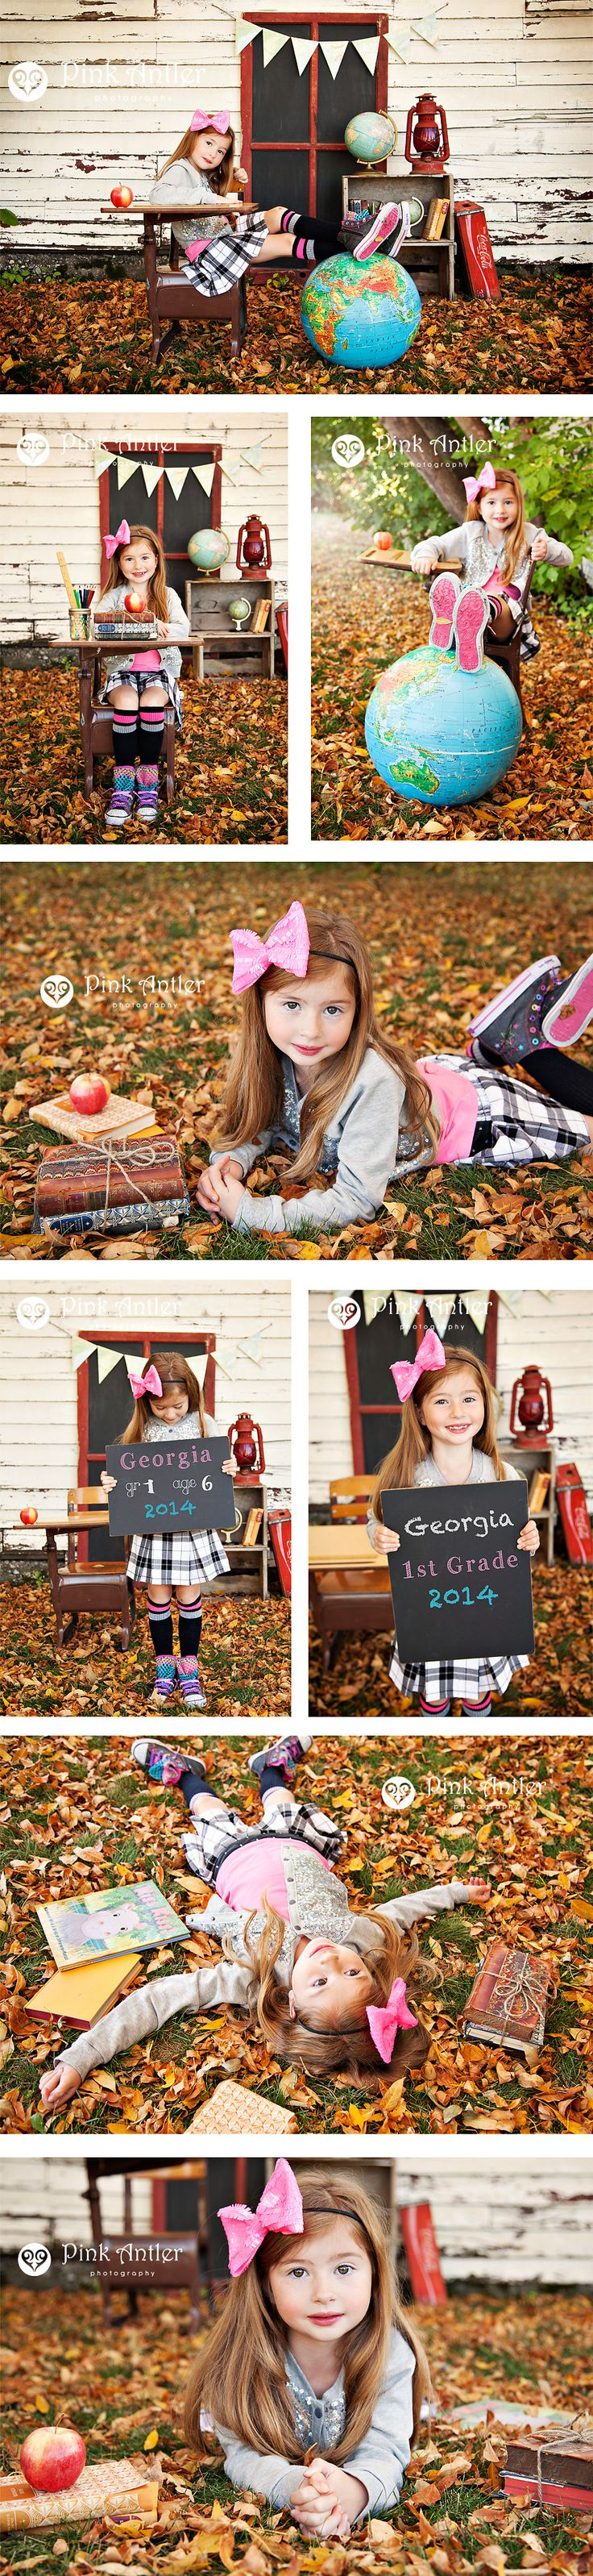 Unique children s photography vintage stylized school portraits with chalkboard and vintage school desk